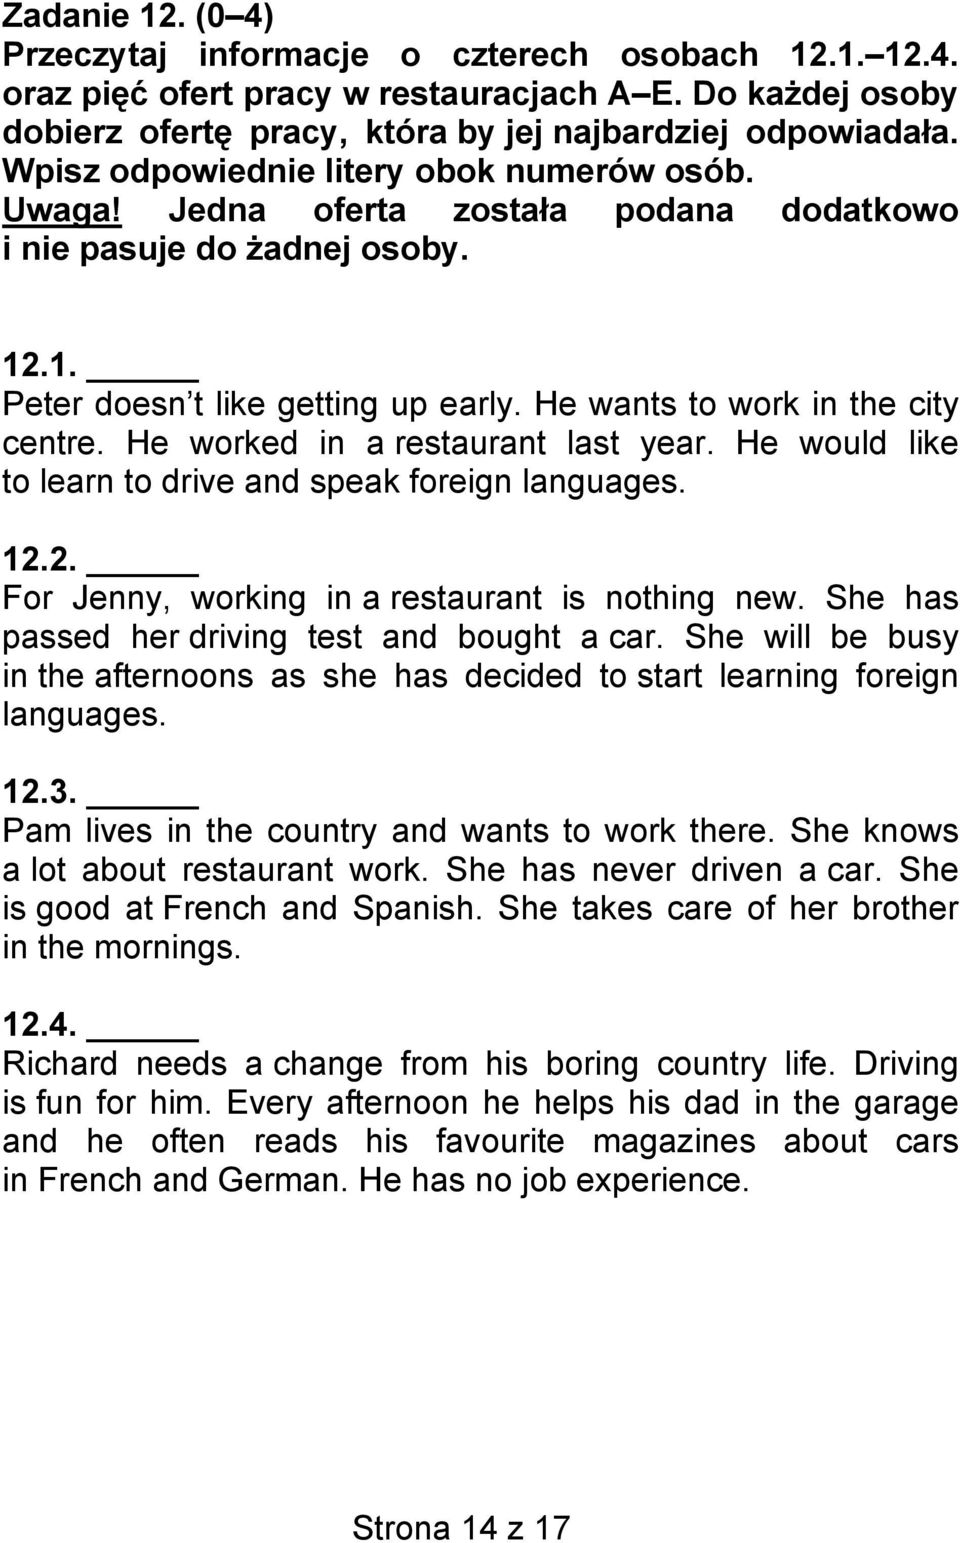 He worked in a restaurant last year. He would like to learn to drive and speak foreign languages. 12.2. For Jenny, working in a restaurant is nothing new.